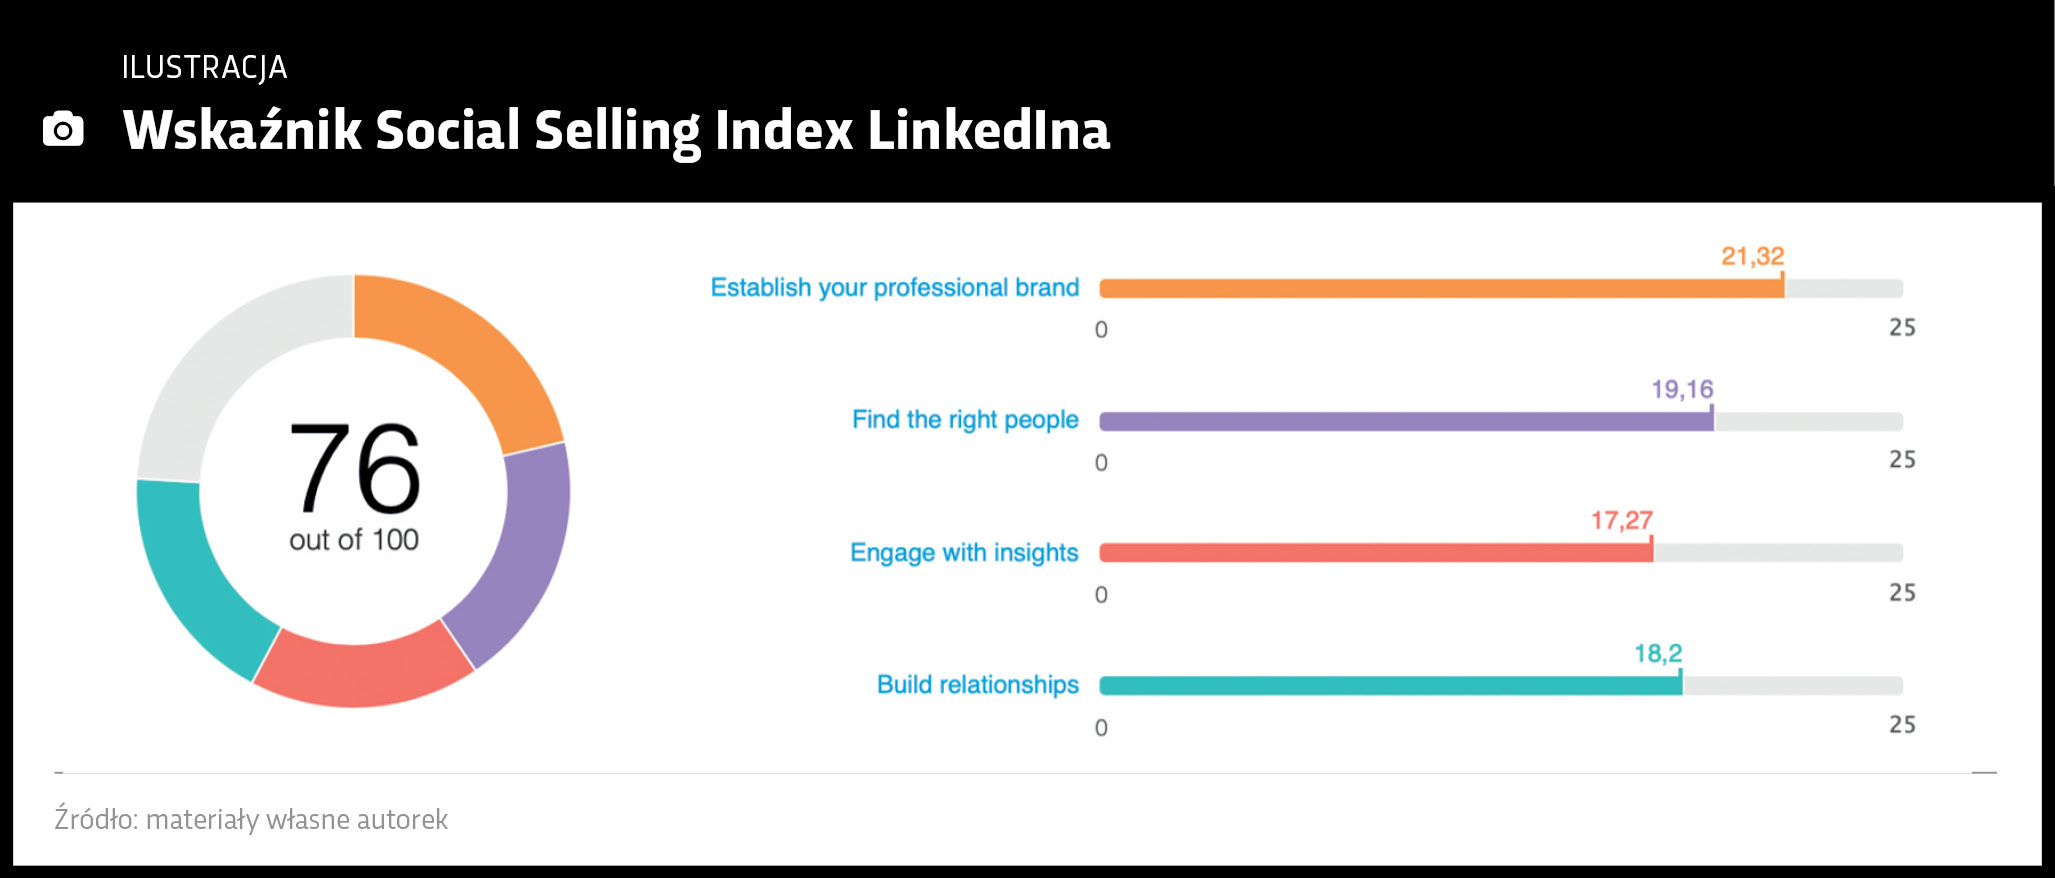 Social Selling Index LinkedIna